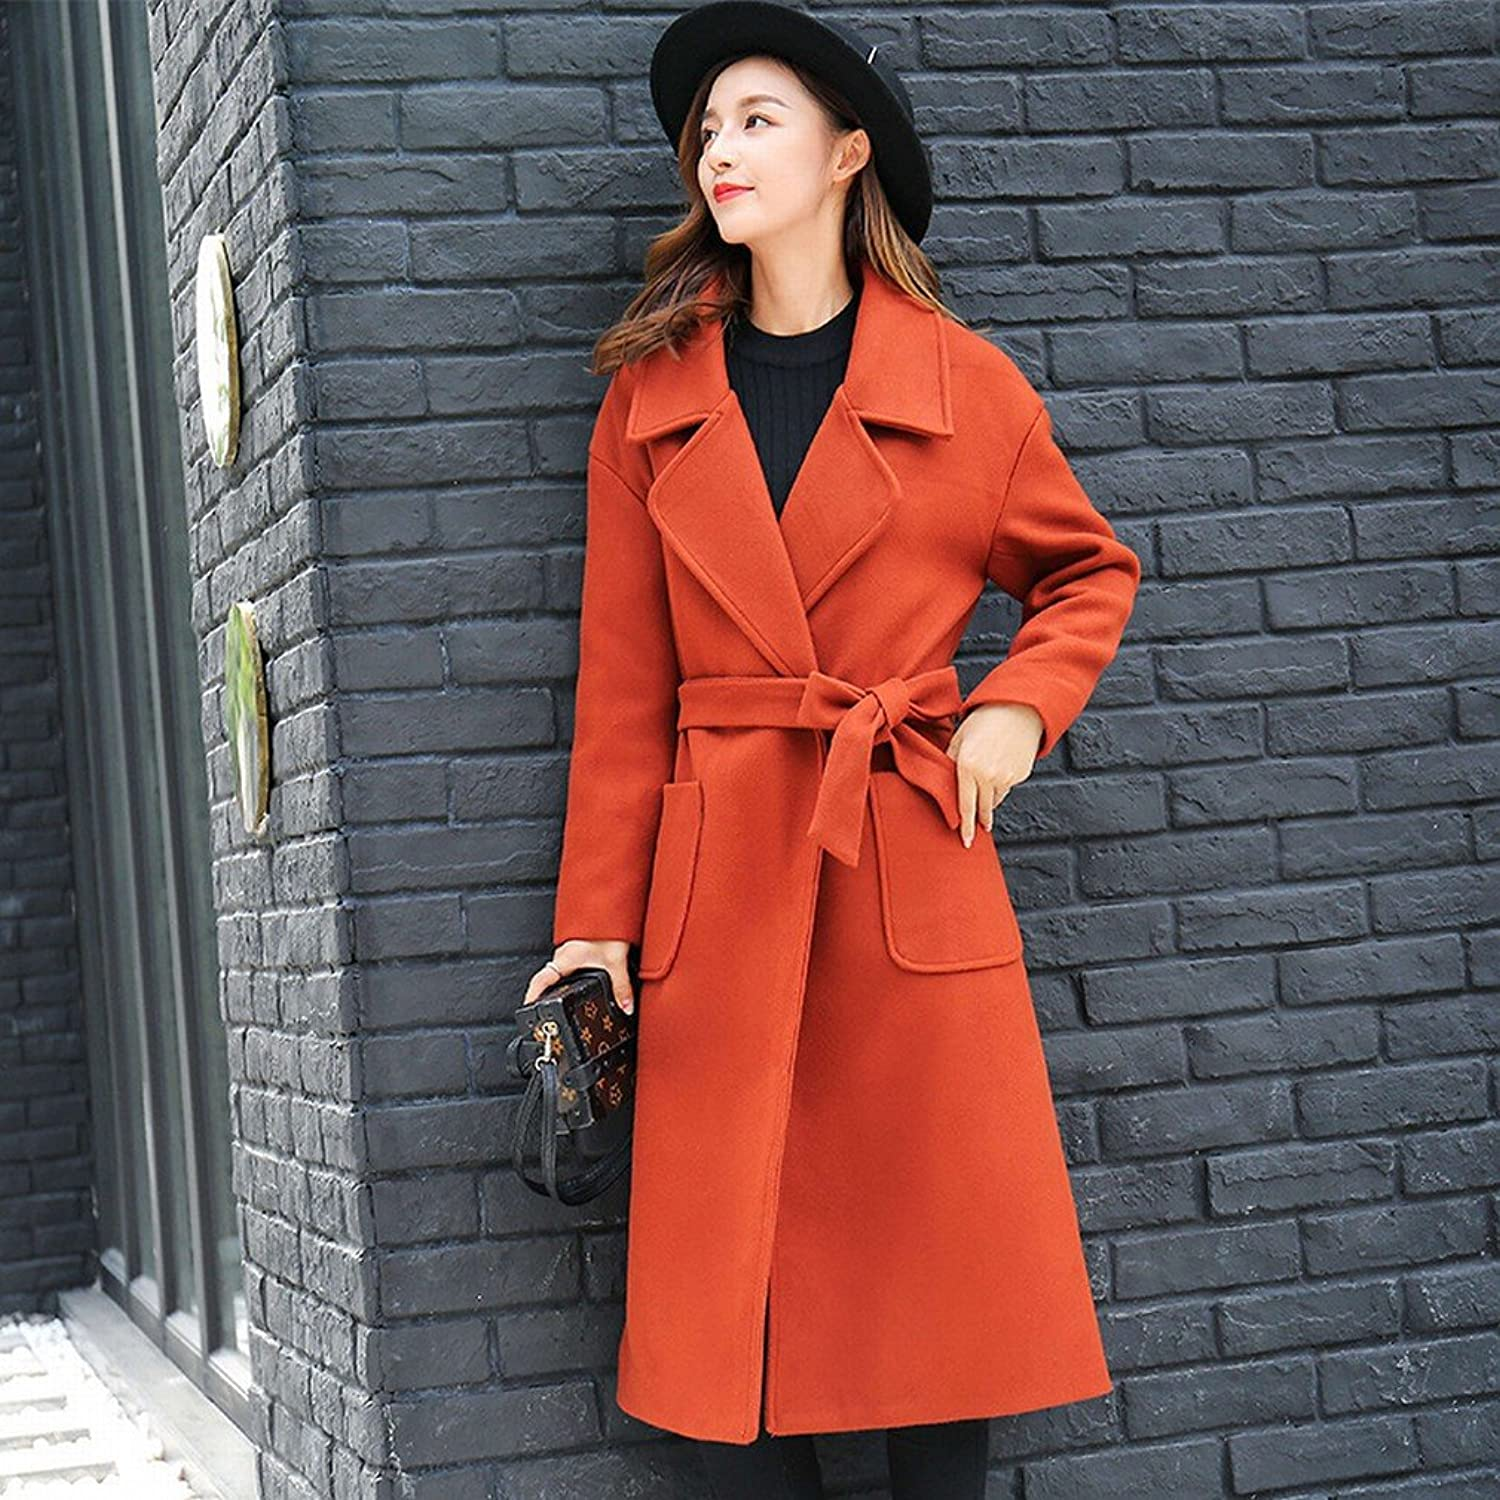 BTTB Autumn and Winter Fashion Lengthened Paragraph Thickening Warm Woolen Coat Long Coat